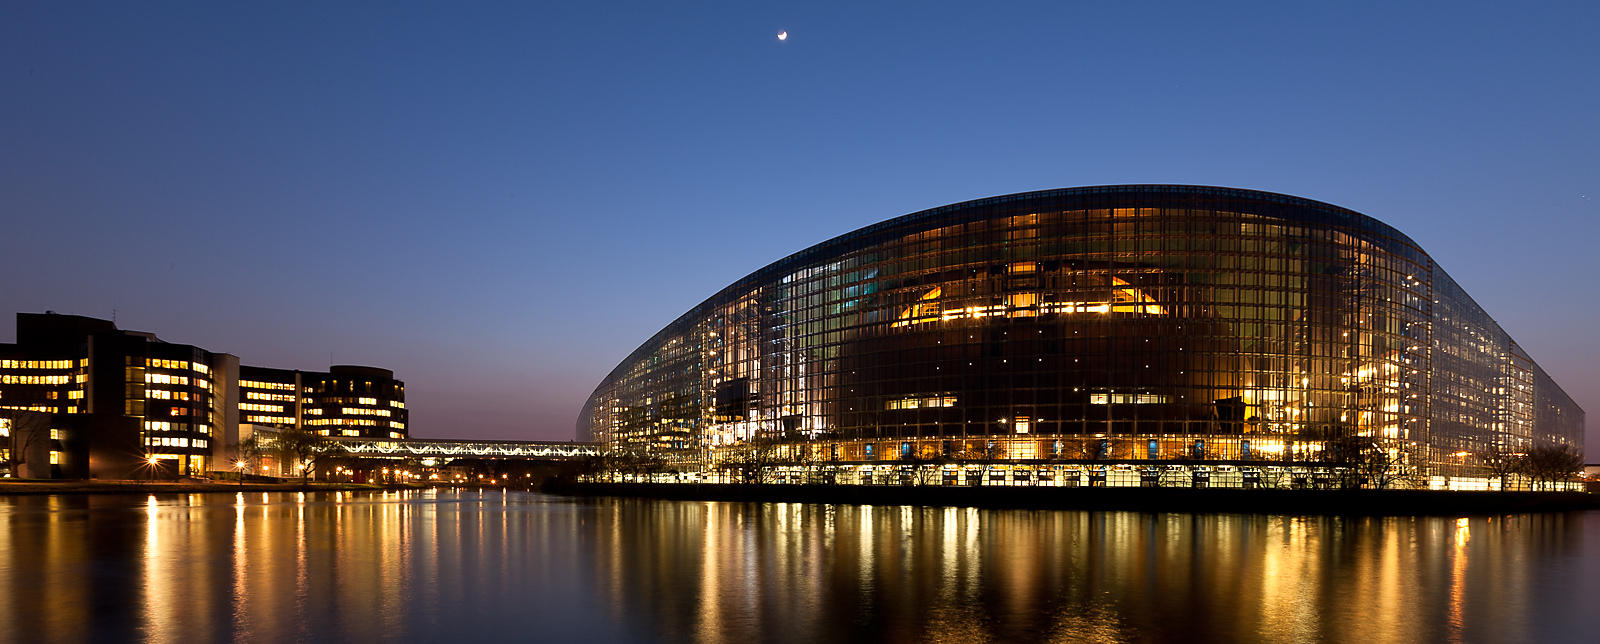 European Parliament by night